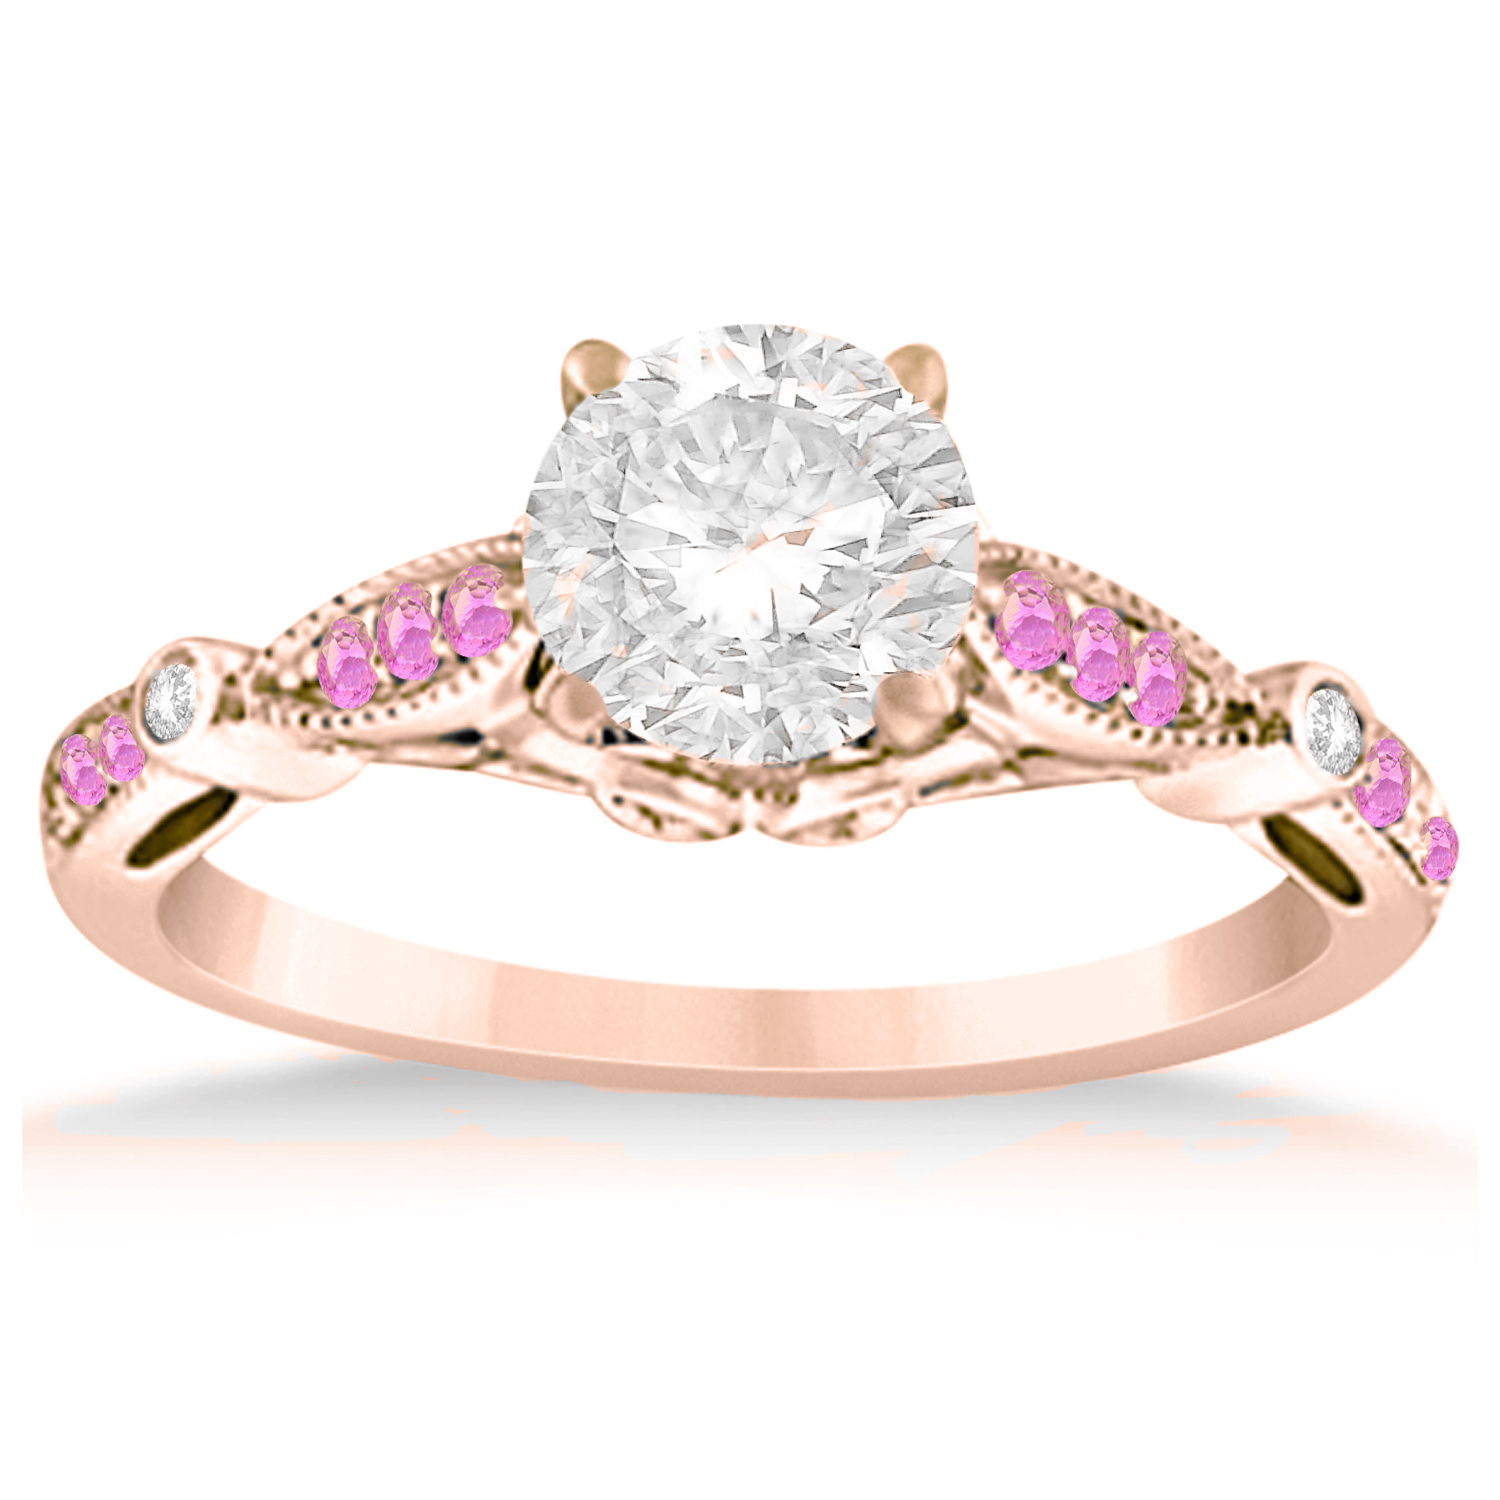 Marquise & Dot Pink Sapphire Vintage Engagement Ring 14k Rose Gold 0 13ct